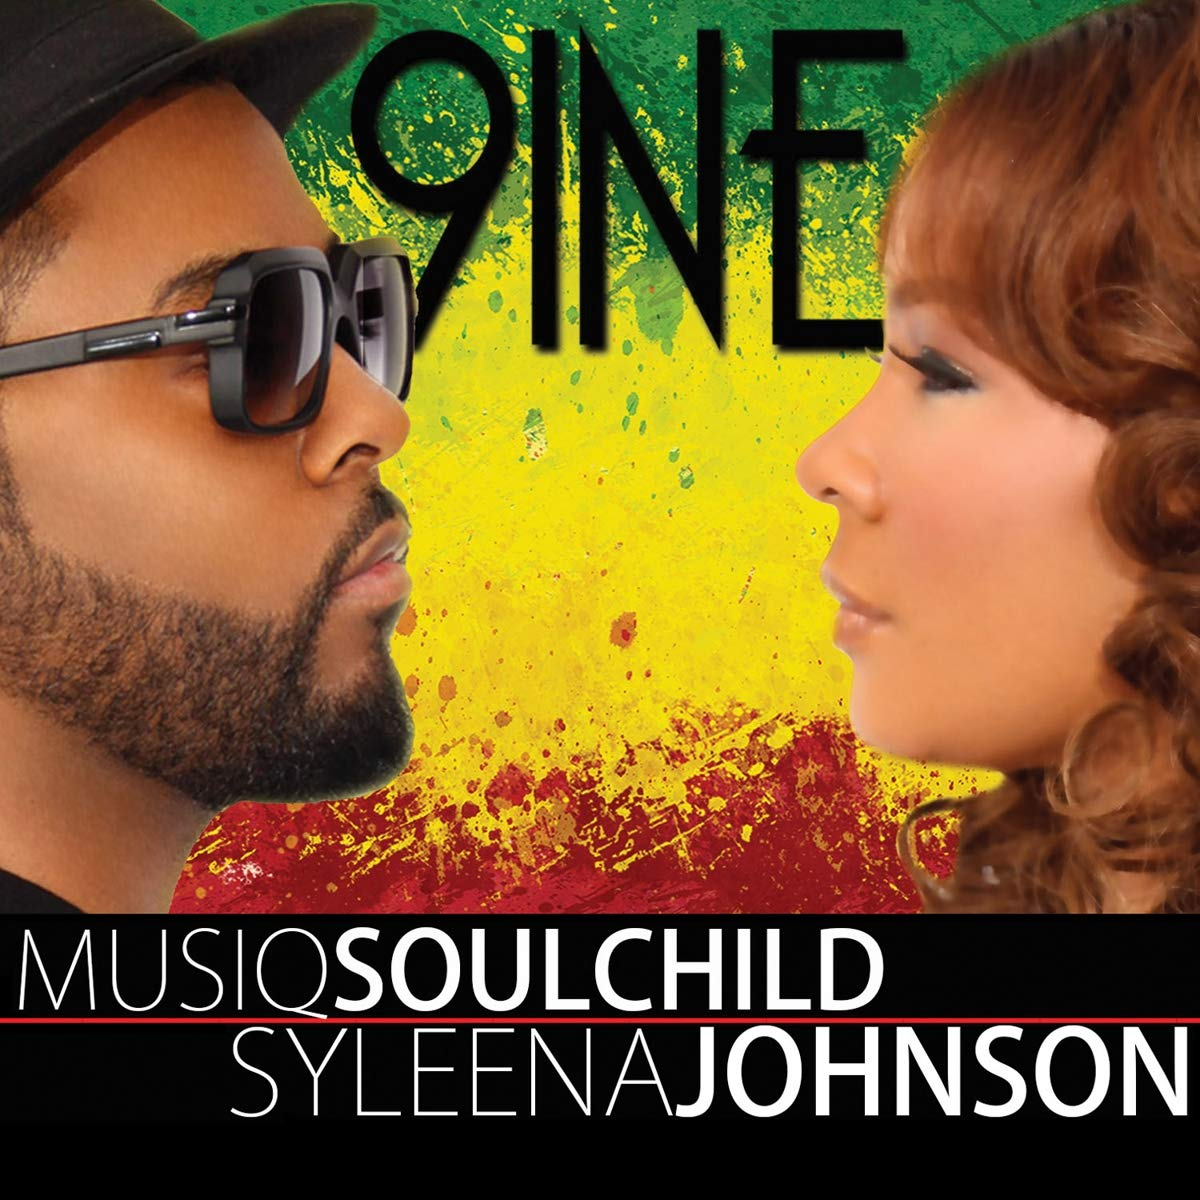 Musiq Soulchild Johnson Syleena 9ine Amazon Com Music